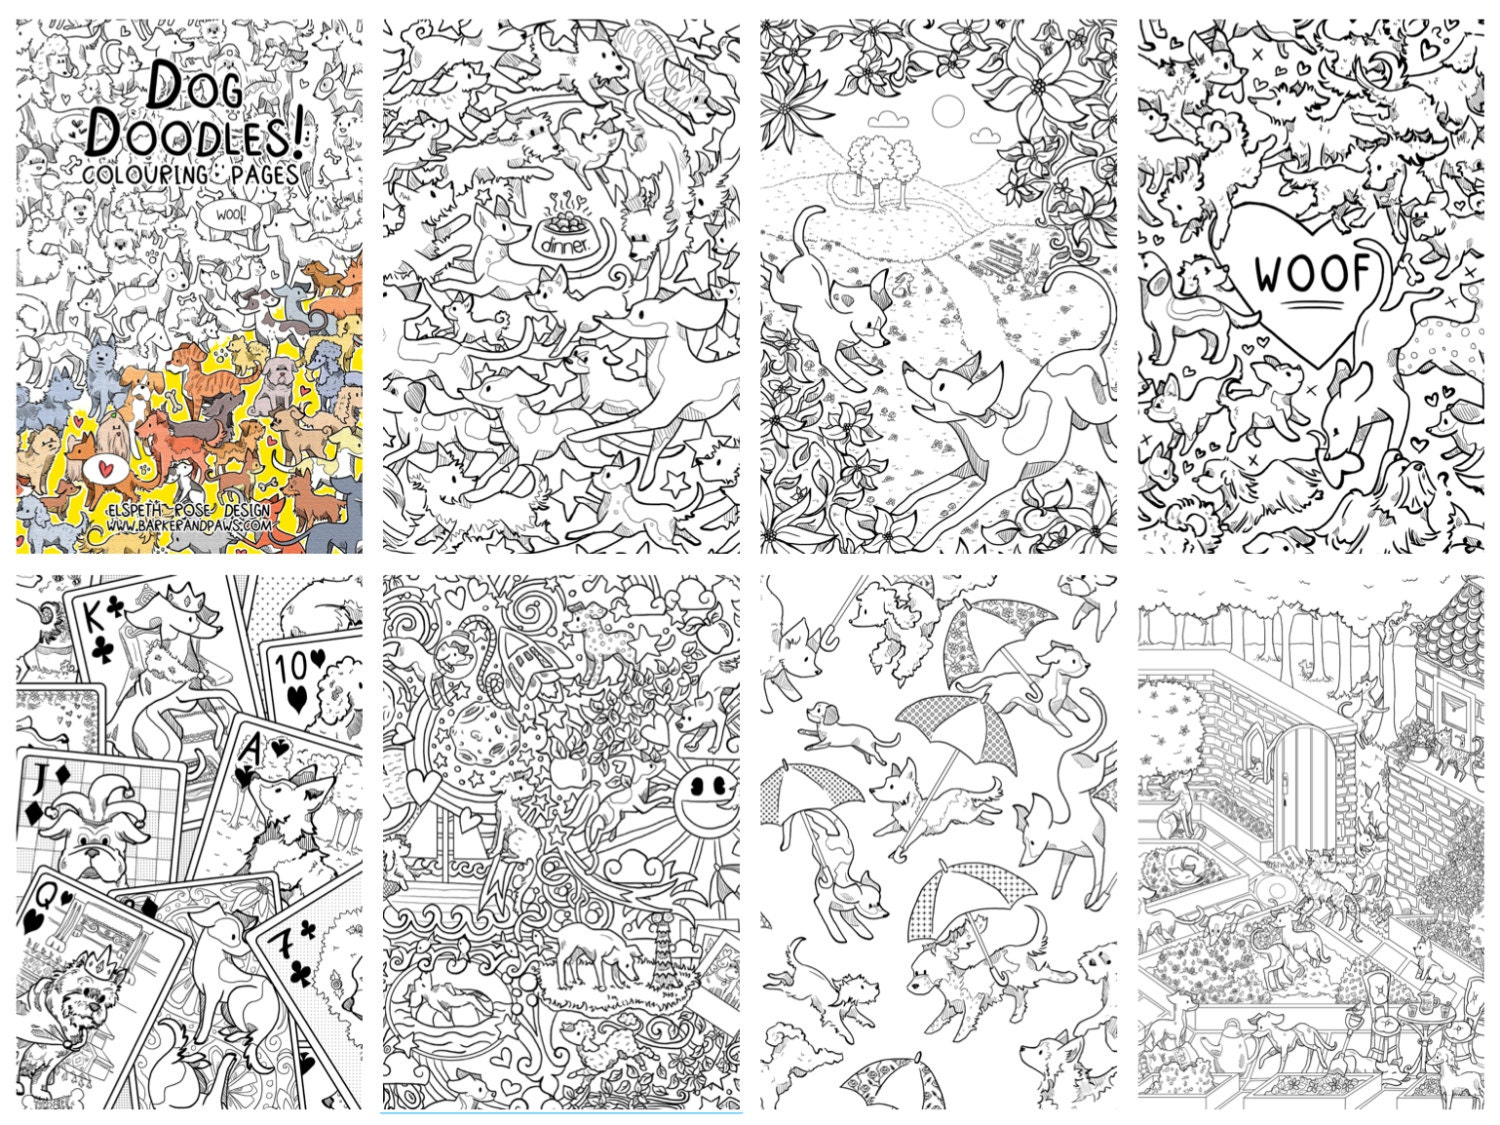 gallery photo gallery photo gallery photo - A4 Colouring Pages